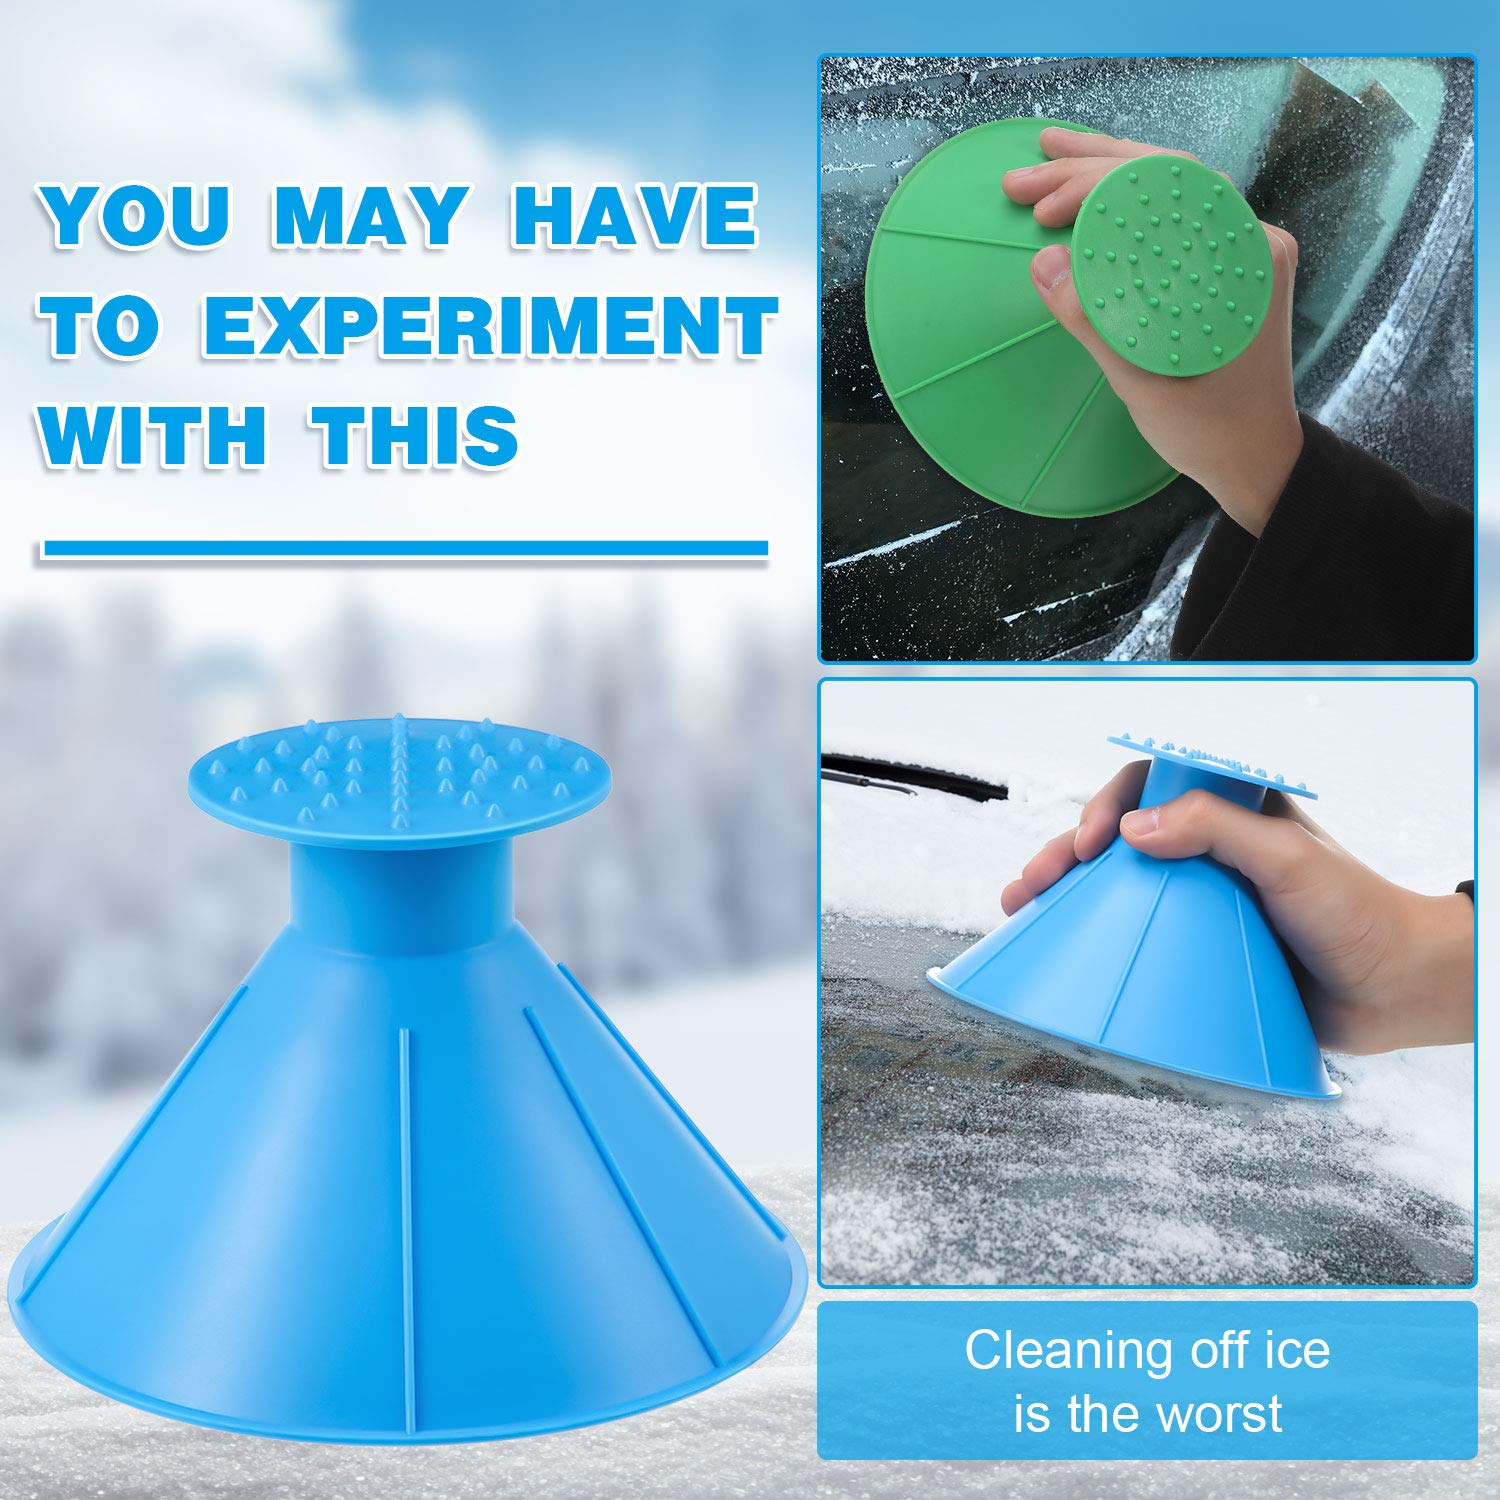 Mudder 2 Pieces Round Ice Scraper Window Cone Shaped Shovel Round Windshield Remover 2 Pieces Car Drying Towel Set for Snow Removal Car Window Cleaning Tool